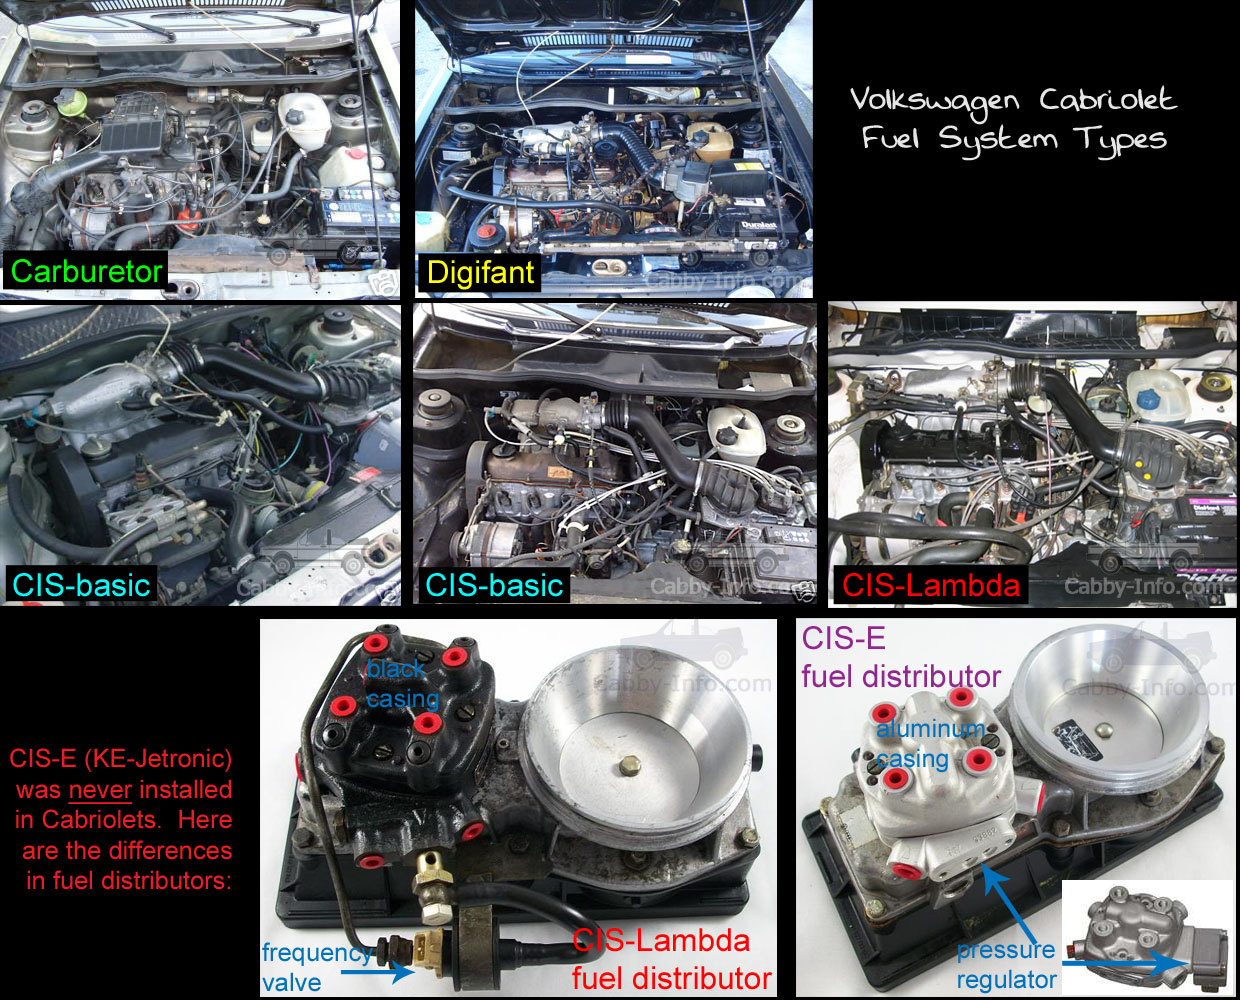 vwvortex com 1988 cabriolet frequency valve not operating cabby info com your online guide to vw cabriolets rabbit convertibles